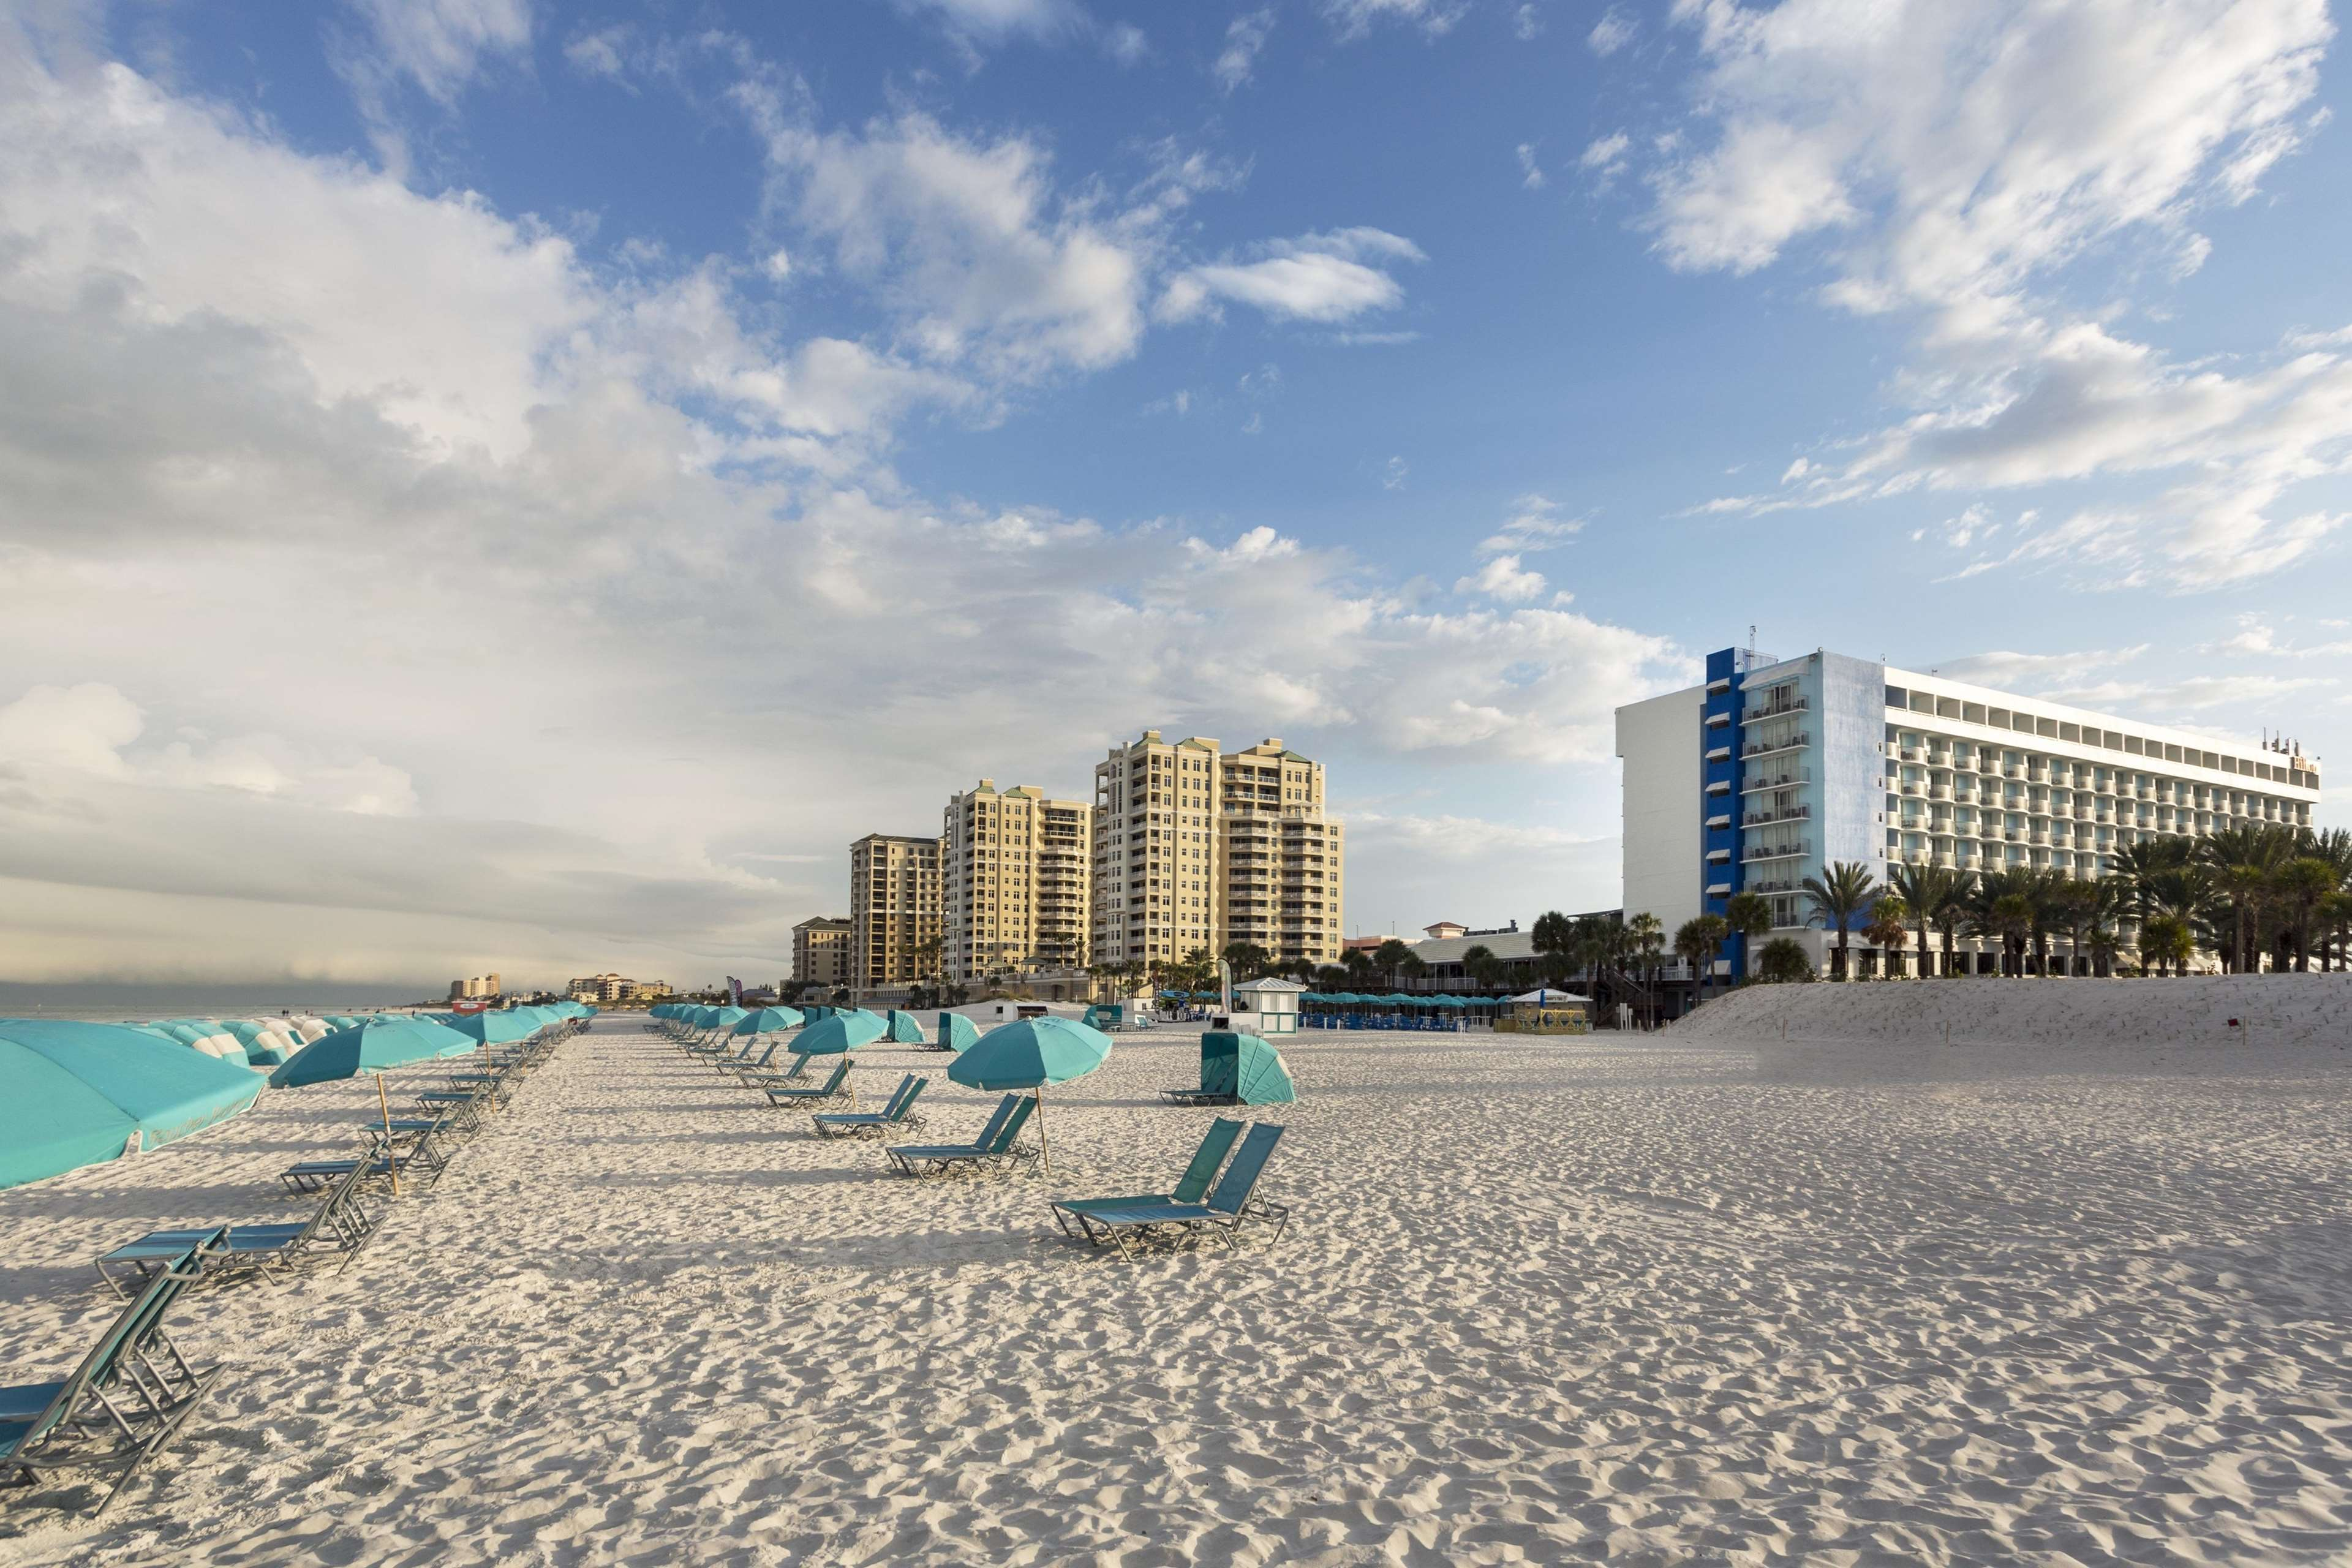 Hilton Clearwater Beach Resort & Spa Coupons near me in Clearwater   8coupons